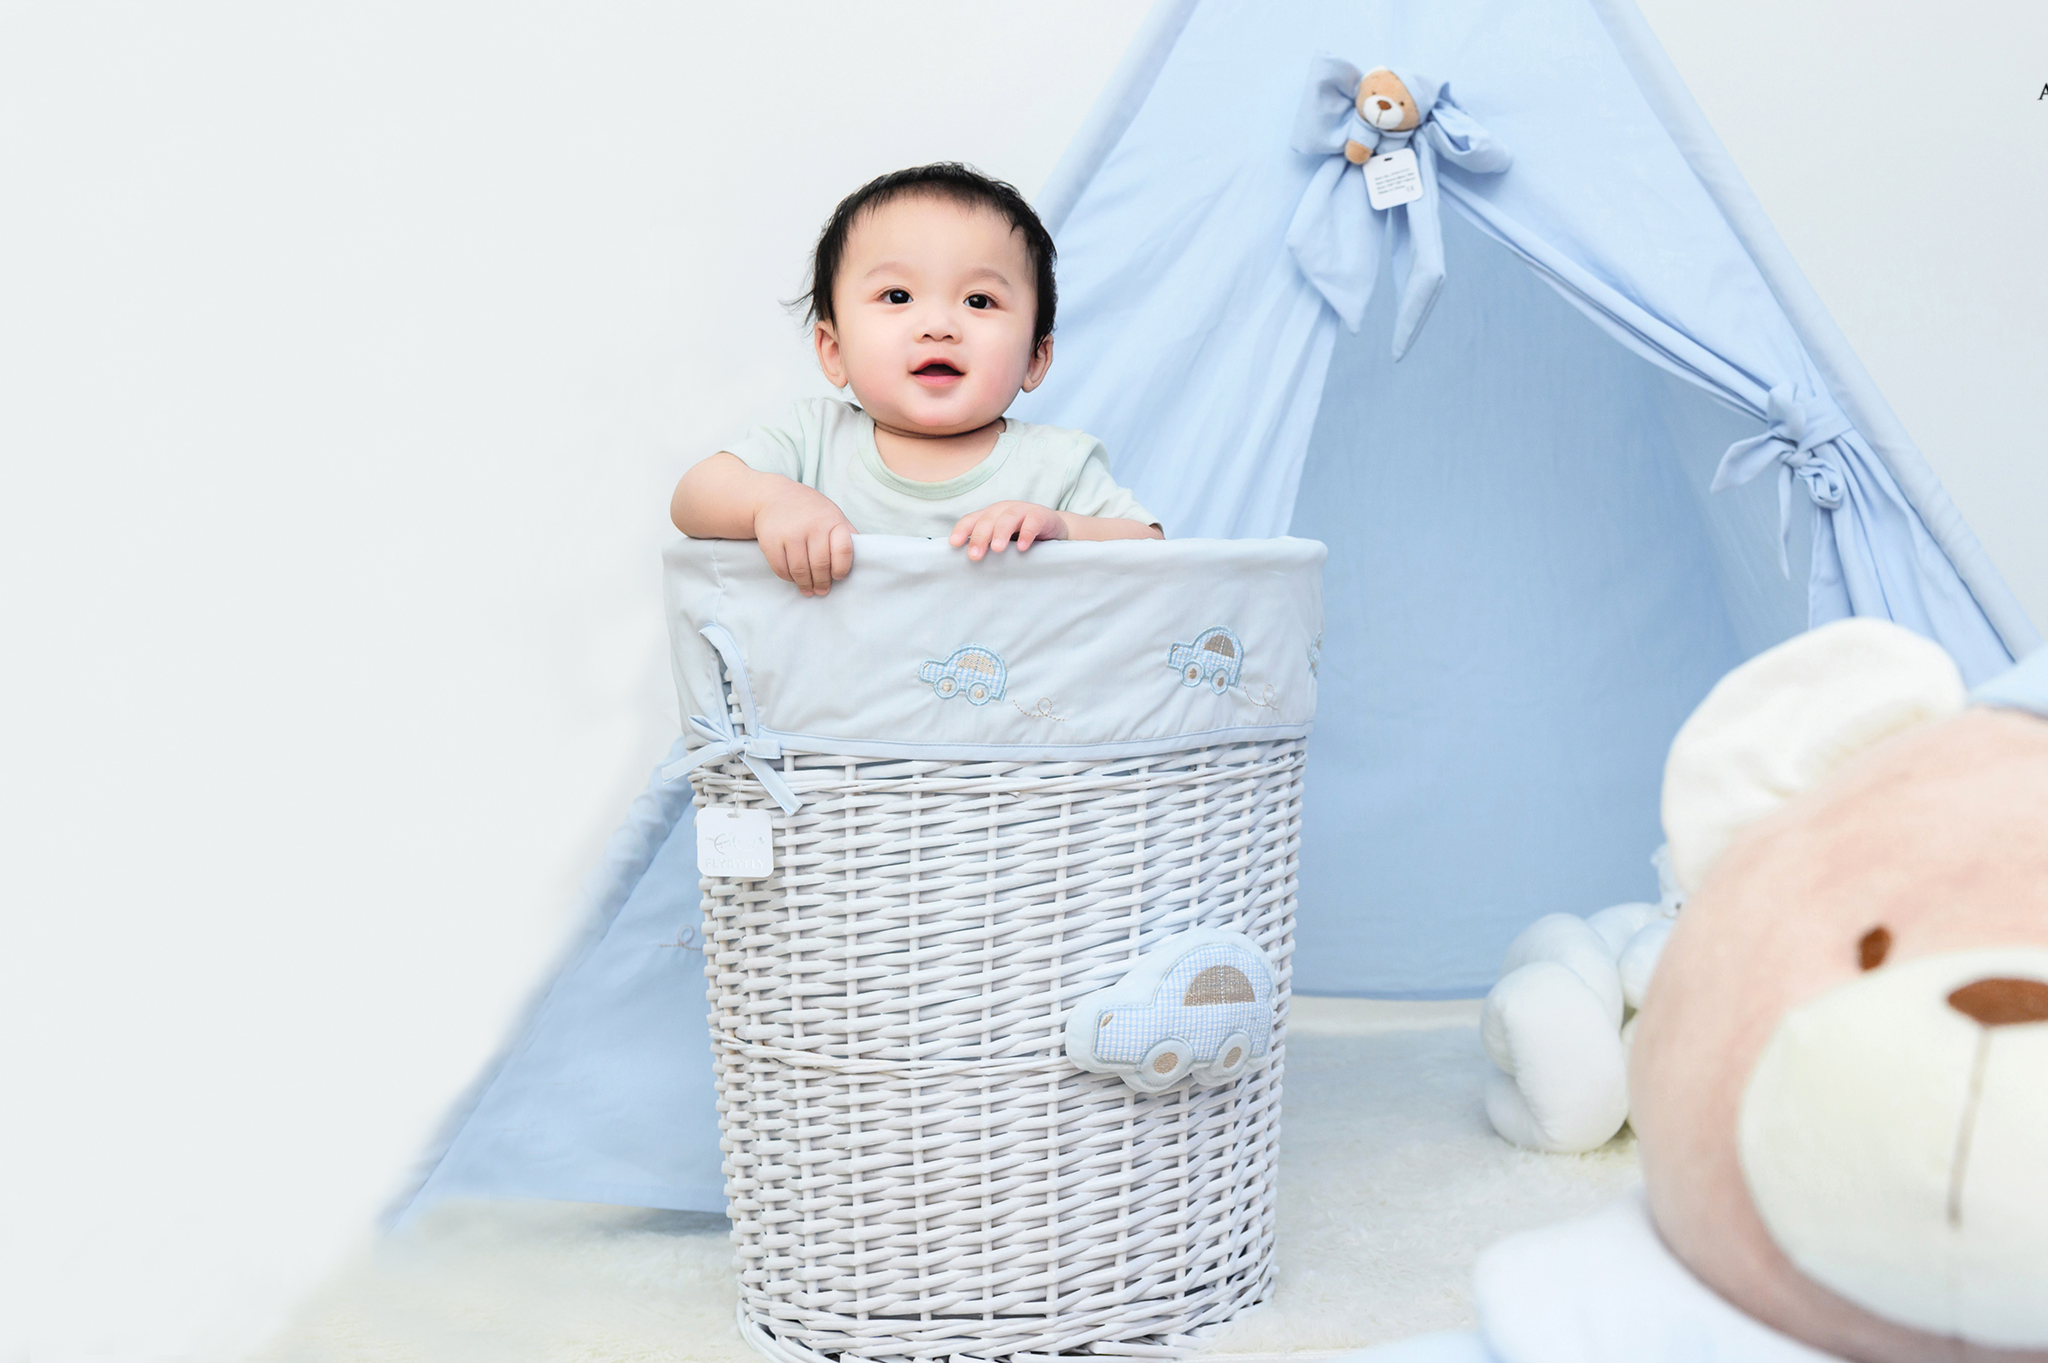 FLYBYFLY | Premium Quality Baby and Kids Products | Exclusive Photoshoot